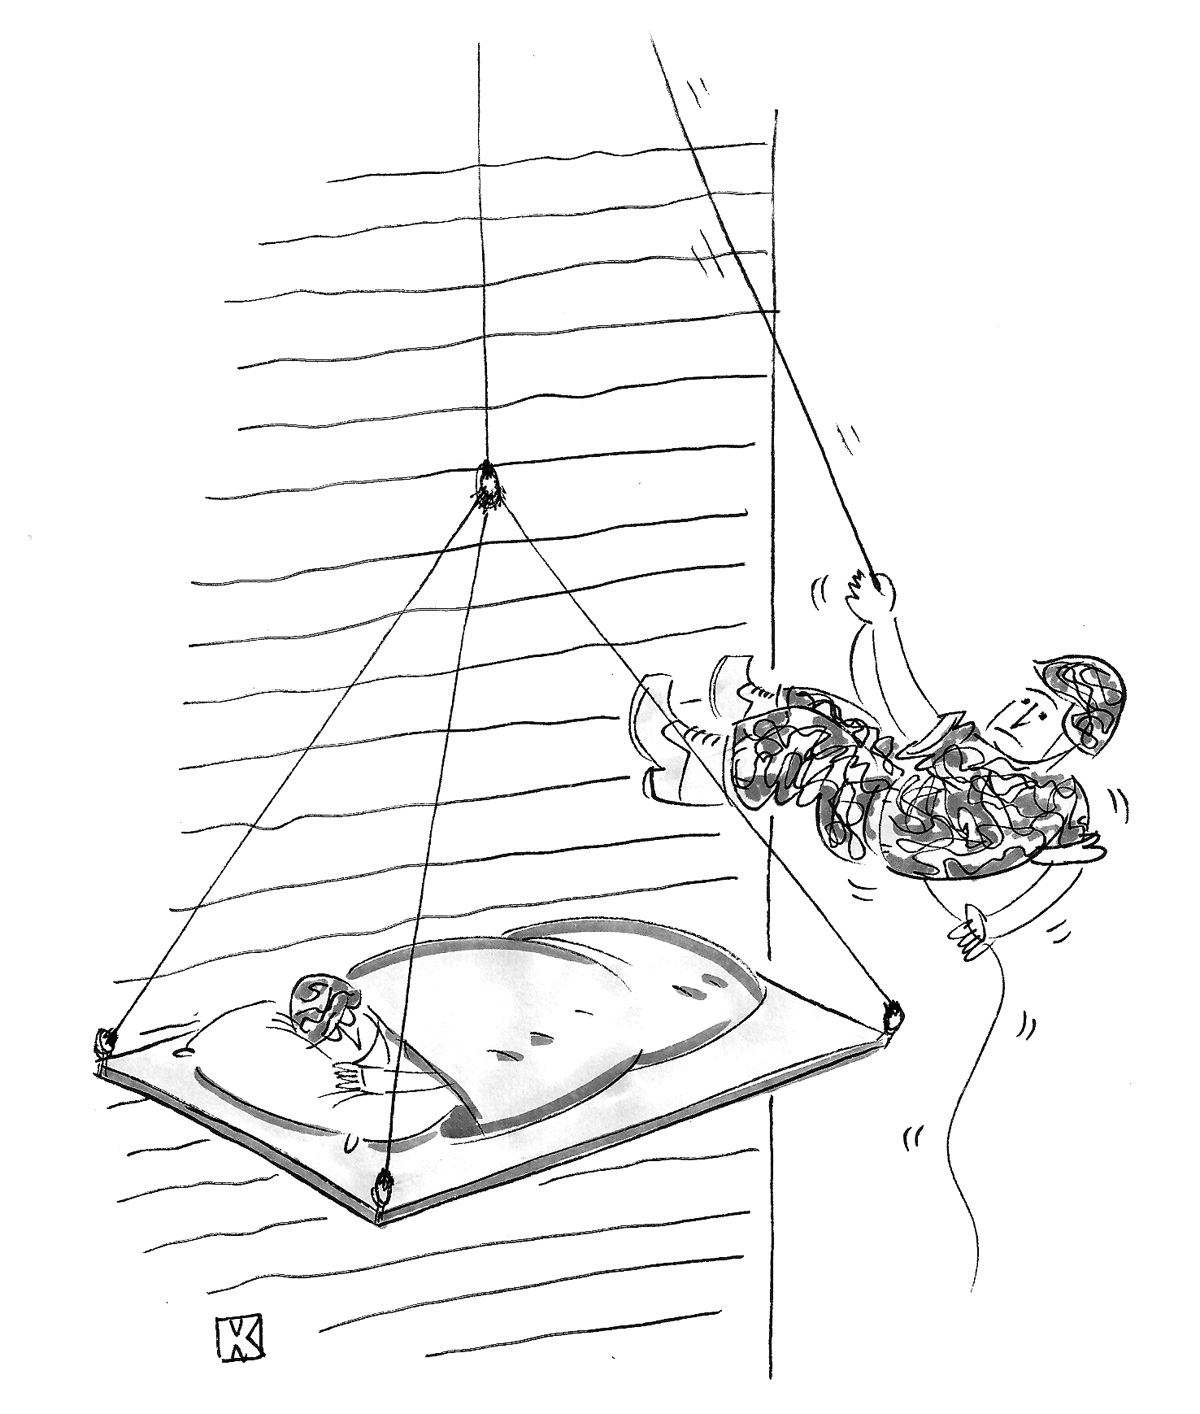 (Soldier is rappelling down an obstacle wall and finds another soldier sleeping in a climber's tent.)